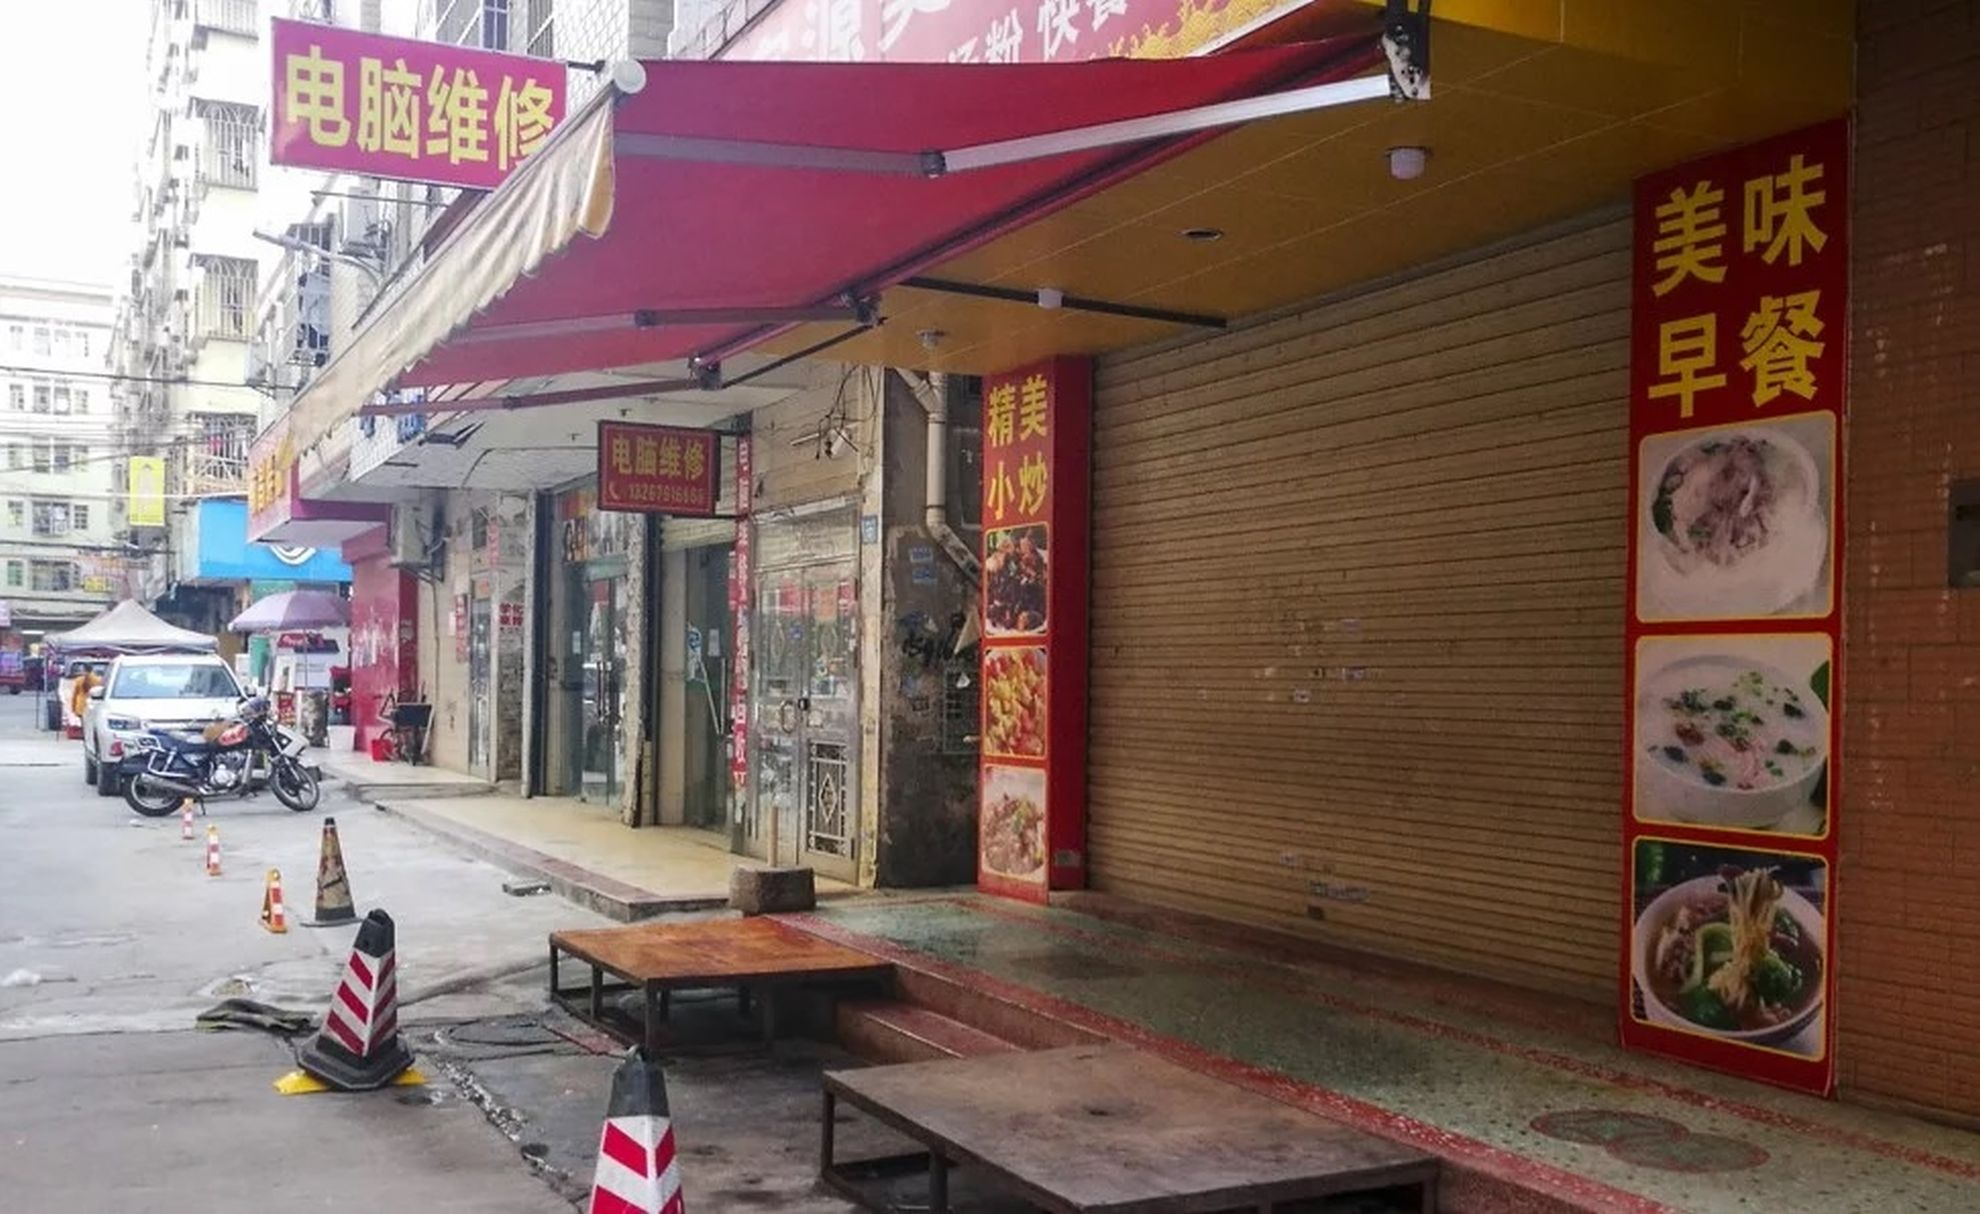 Samsung's retreat from Huizhou has had a huge negative impact on the city